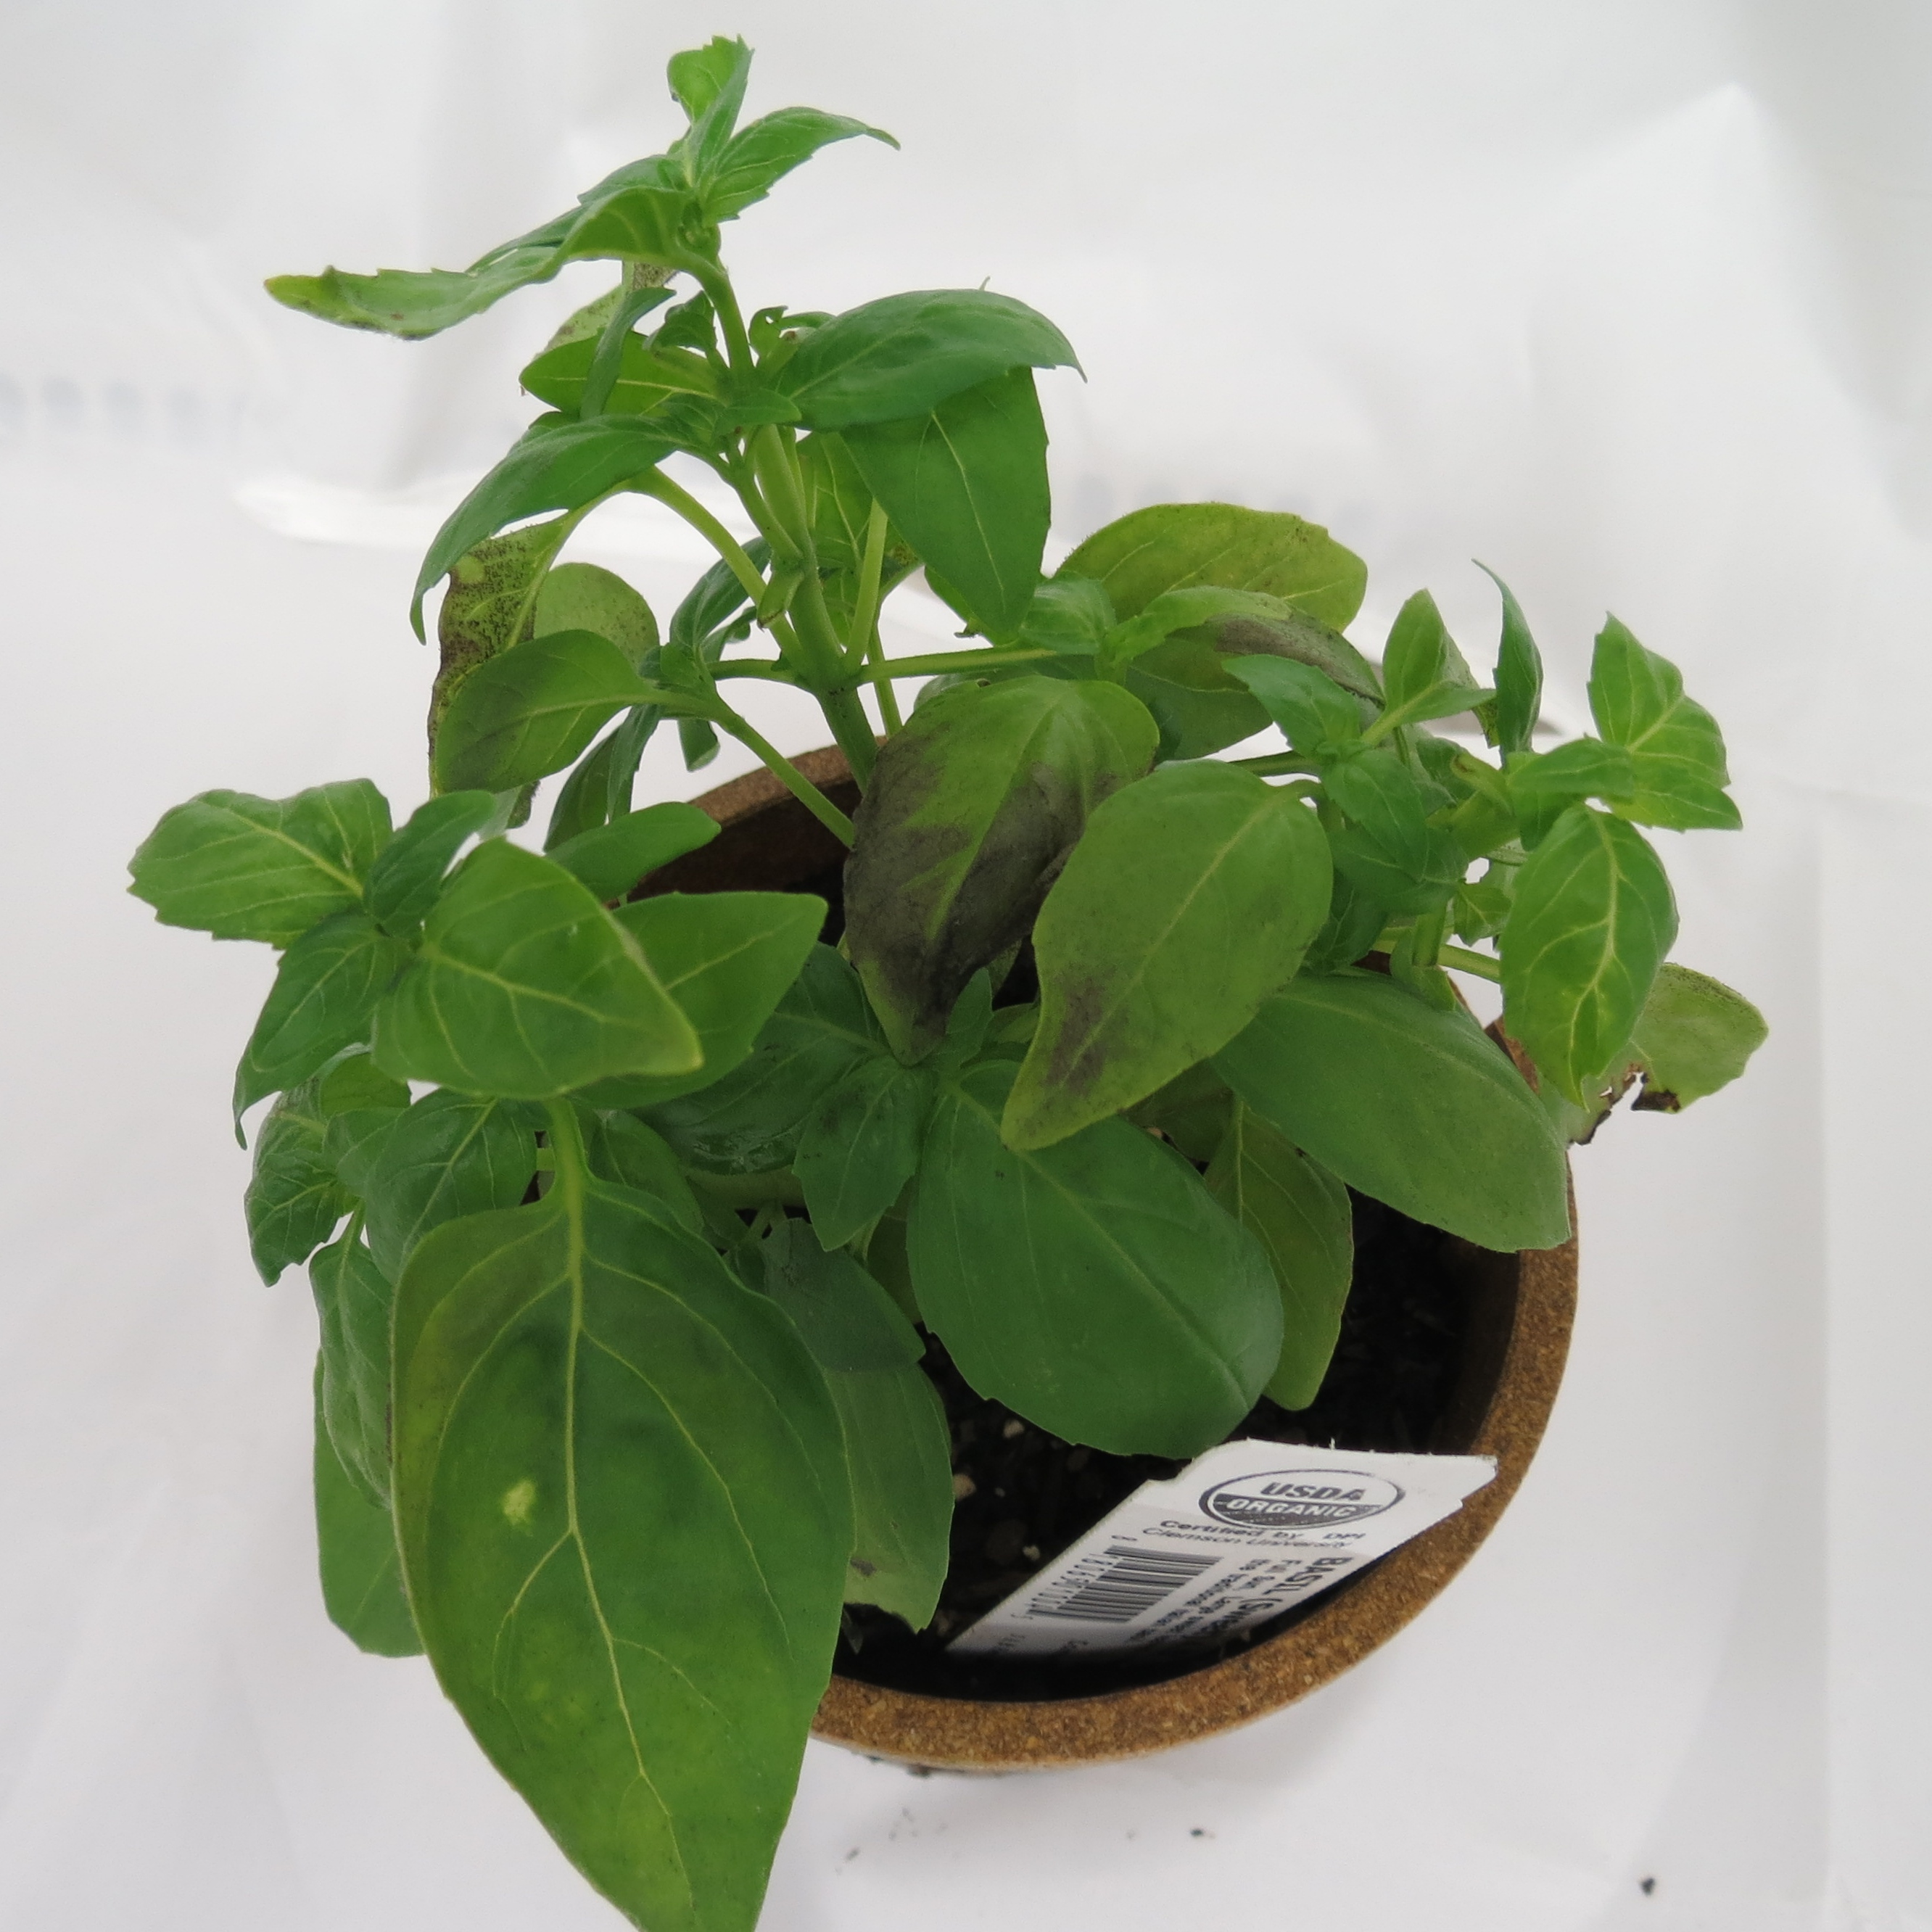 Figure 2: Symptoms of basil downy mildew, note browning of leaves (Saunia Withers, NCSU Vegetable Pathology Lab)